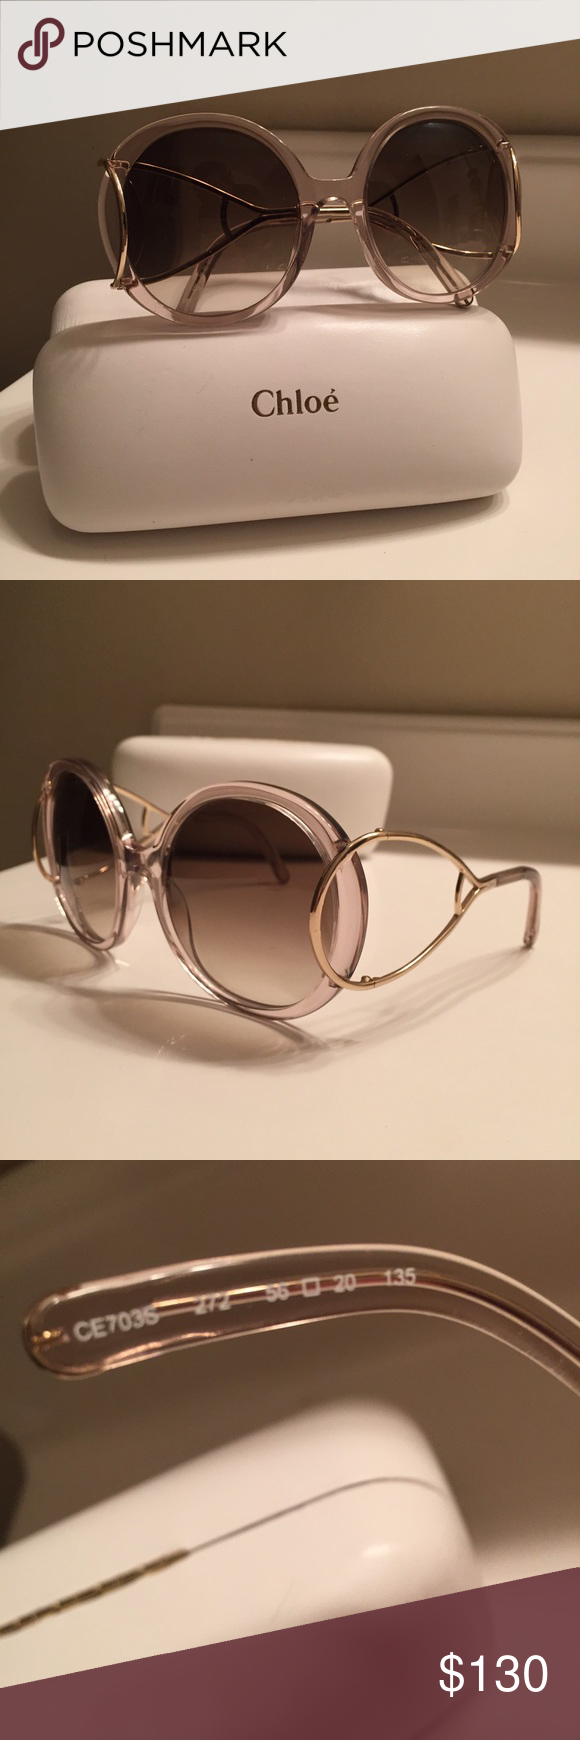 34bd097d71c7 Chloe CE703 women s sunglasses New store display women s Chloe ce703  sunglasses in perfect condition. Case is currently available. Chloe  Accessories ...